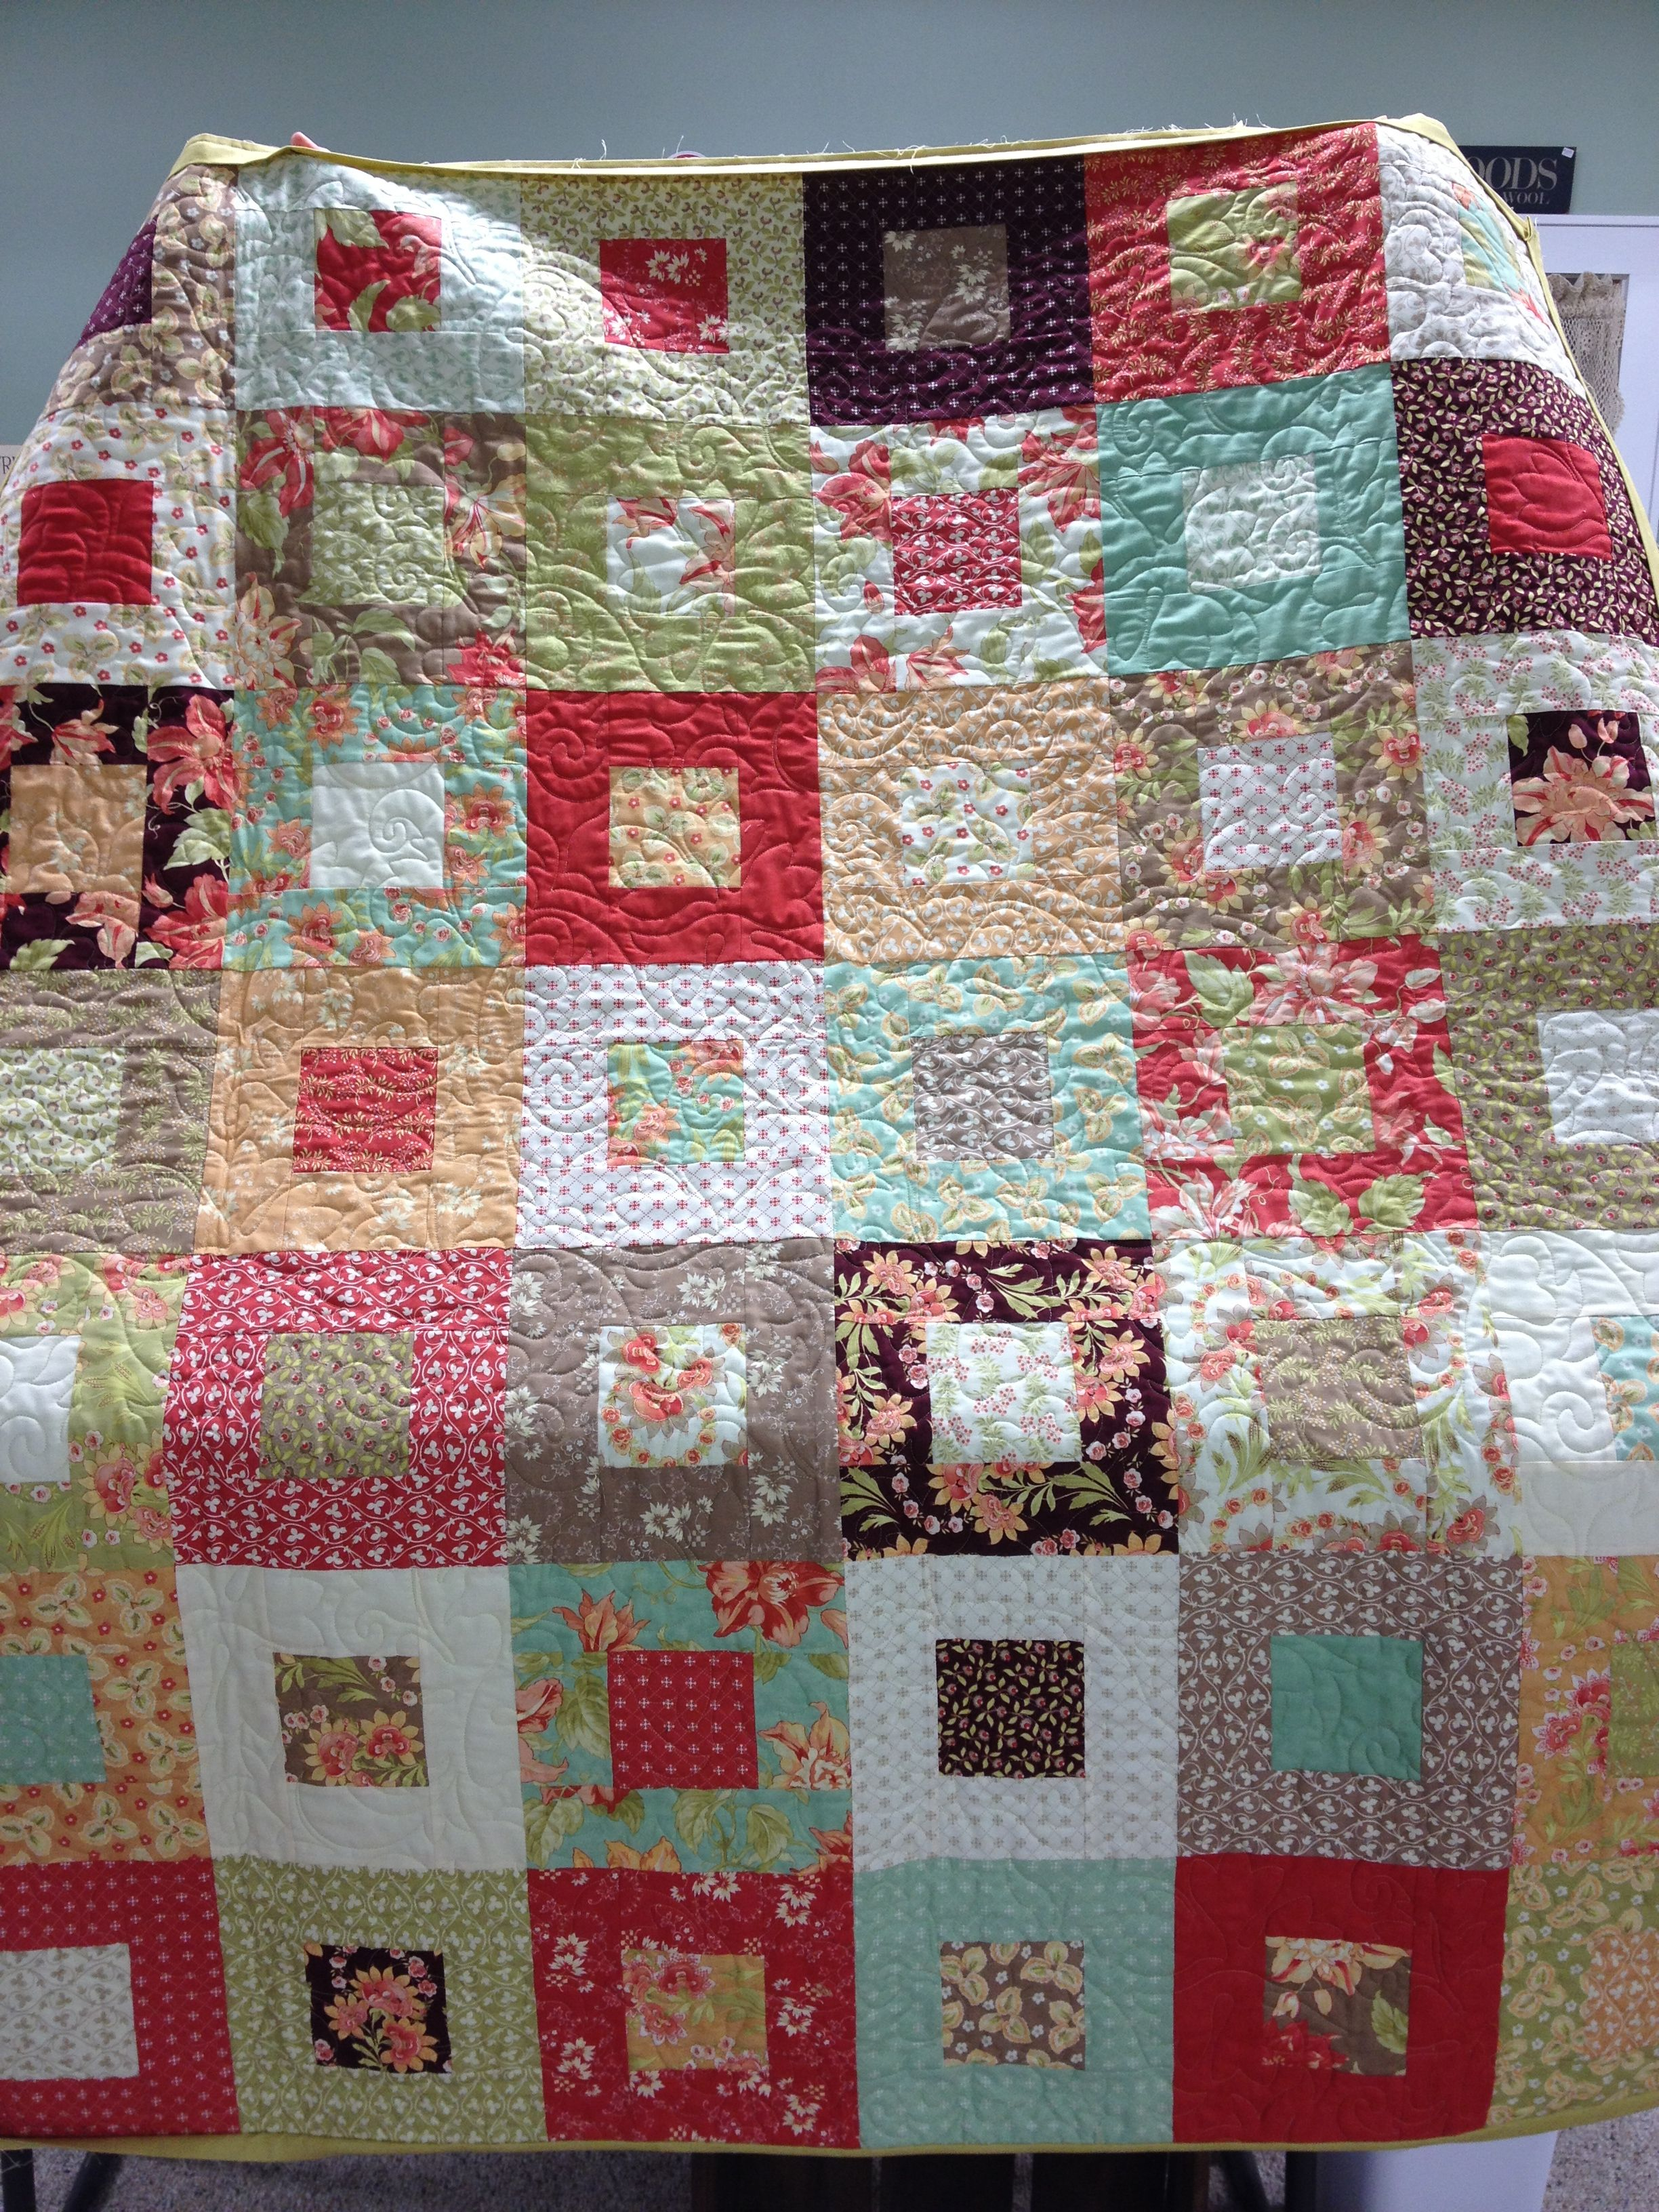 mccalls colorado blossom clemons make s by a modern i to retreat with longmont vibe in spring quilt quick made at few october although sandra mccall hours octobernovember fabrics this cover it is quilts the